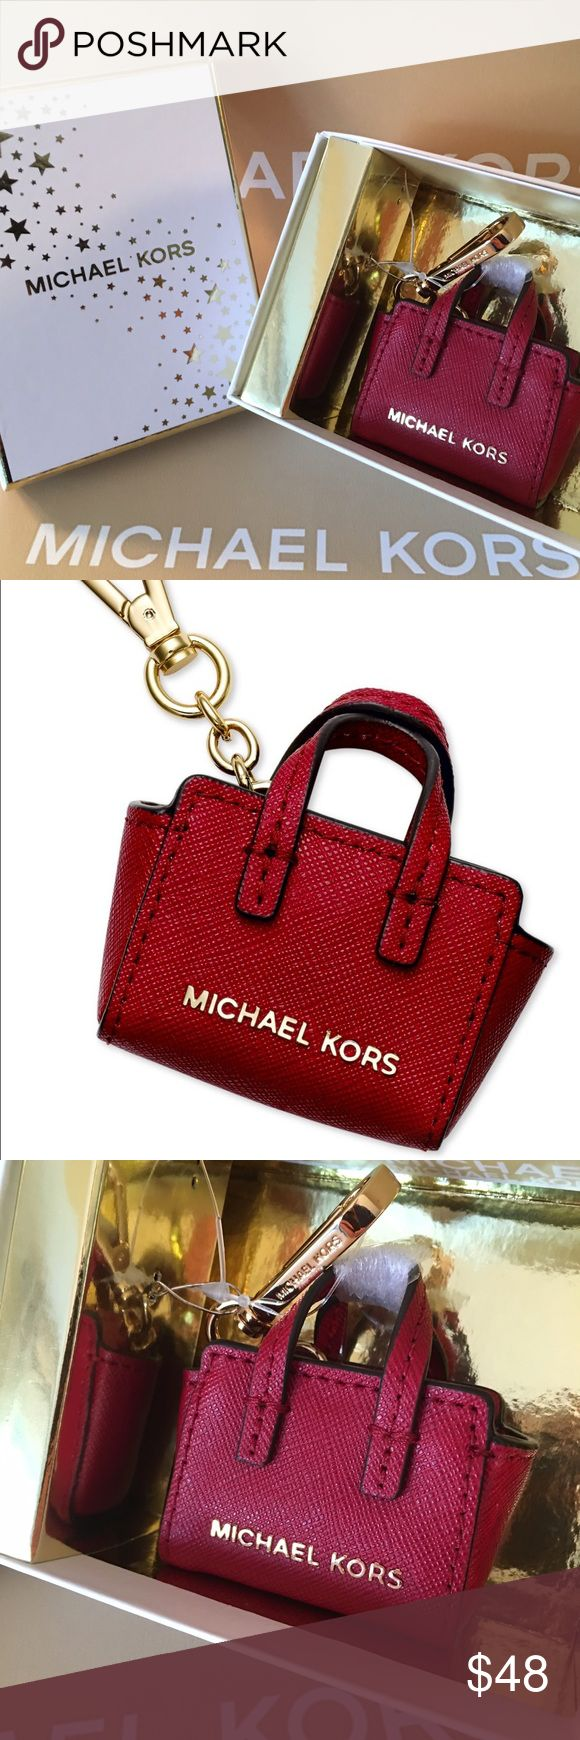 🆕MICHAEL KORS NEW PURSE KEYCHAIN 💯AUTH MICHAEL KORS NEW NEVER USED WITH TAGS PURSE KEYCHAIN 100% AUTHENTIC. SO ADORABLE AND VERY  FASHIONABLE. PERFECT ADDITION TO YOUR KEY RING OR EVEN A PURSE CHARM. A MINIATURE COATED CANVAS MICHAEL KORS SELMA BAG. THIS ITEM COMES IN A STUNNING MICHAEL KORS GIFT BOX. PERFECT ITEM FOR YOU OR A EXCELLENT HOLIDAY GIFT. THE COLOR IS CALLED CHERRY WHICH TO ME IS A DEEP RED Michael Kors Bags